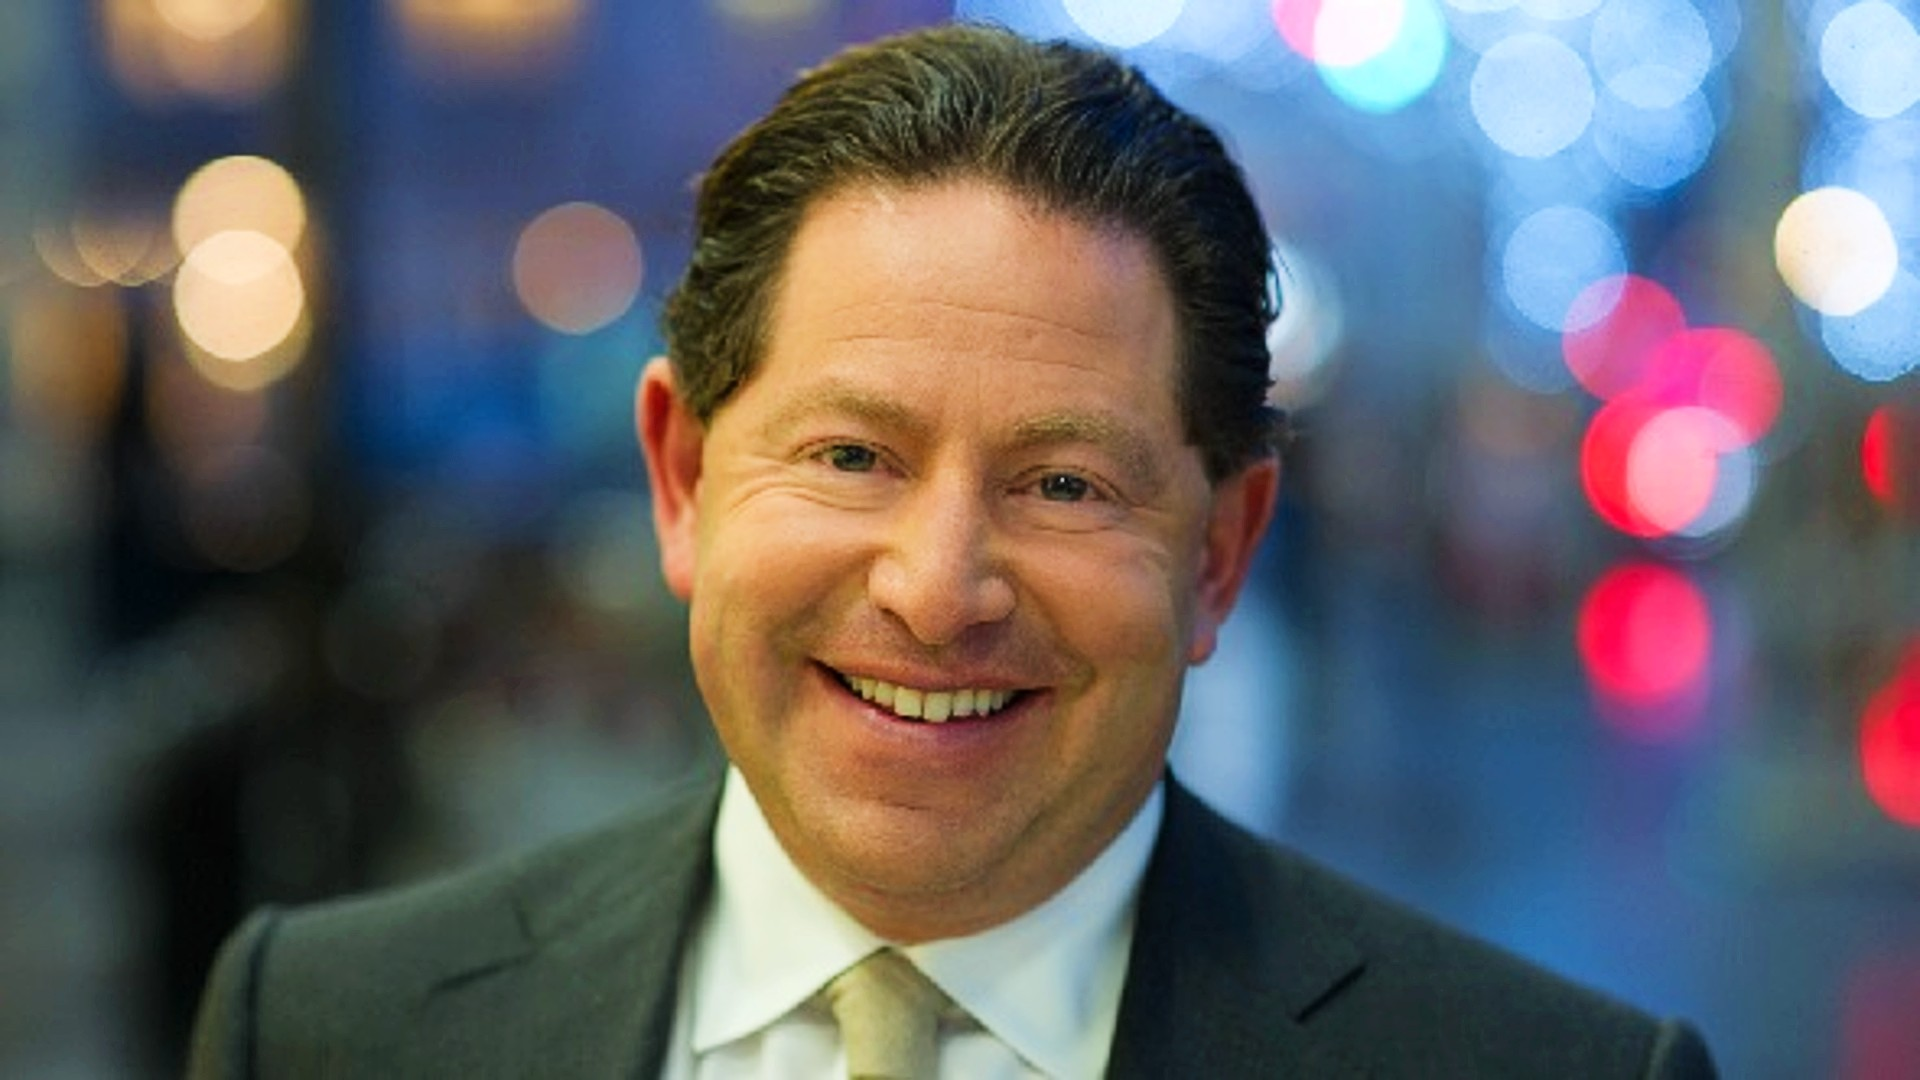 Activision Blizzard CEO agrees to cut his pay by half